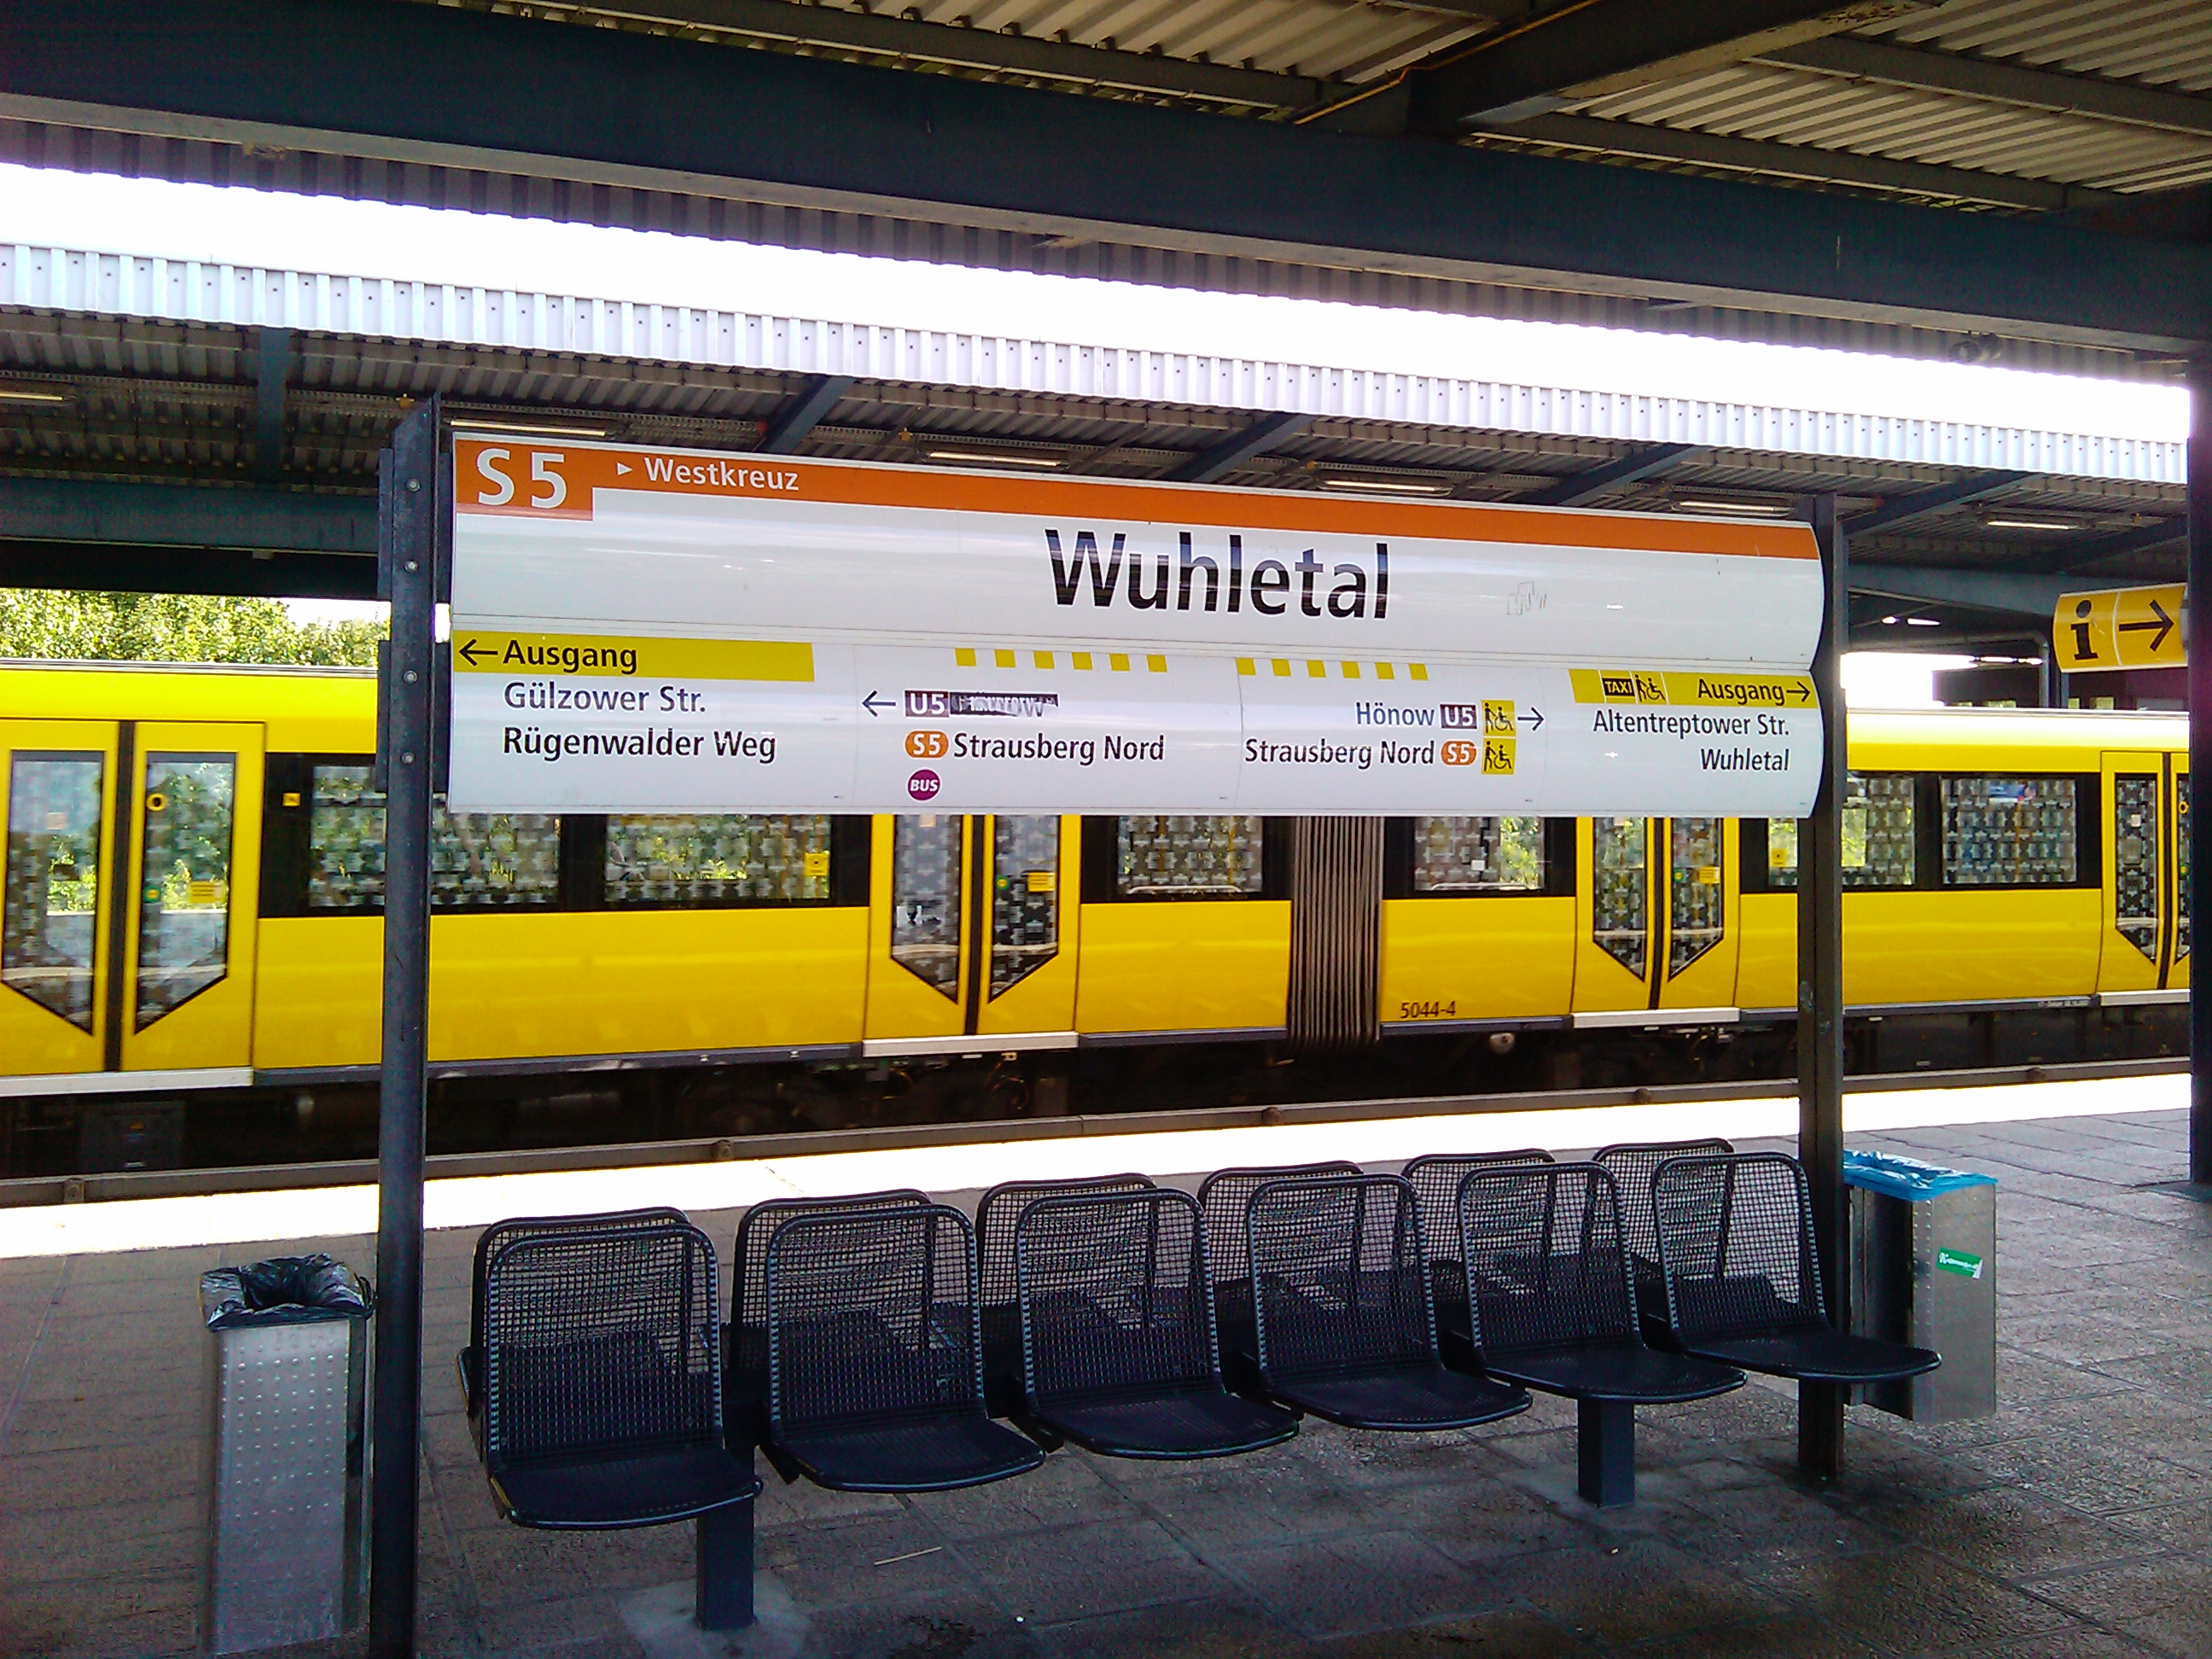 File:Bahnhof Berlin-Wuhletal Station Sign of S-Bahn in BVG Corporate ...